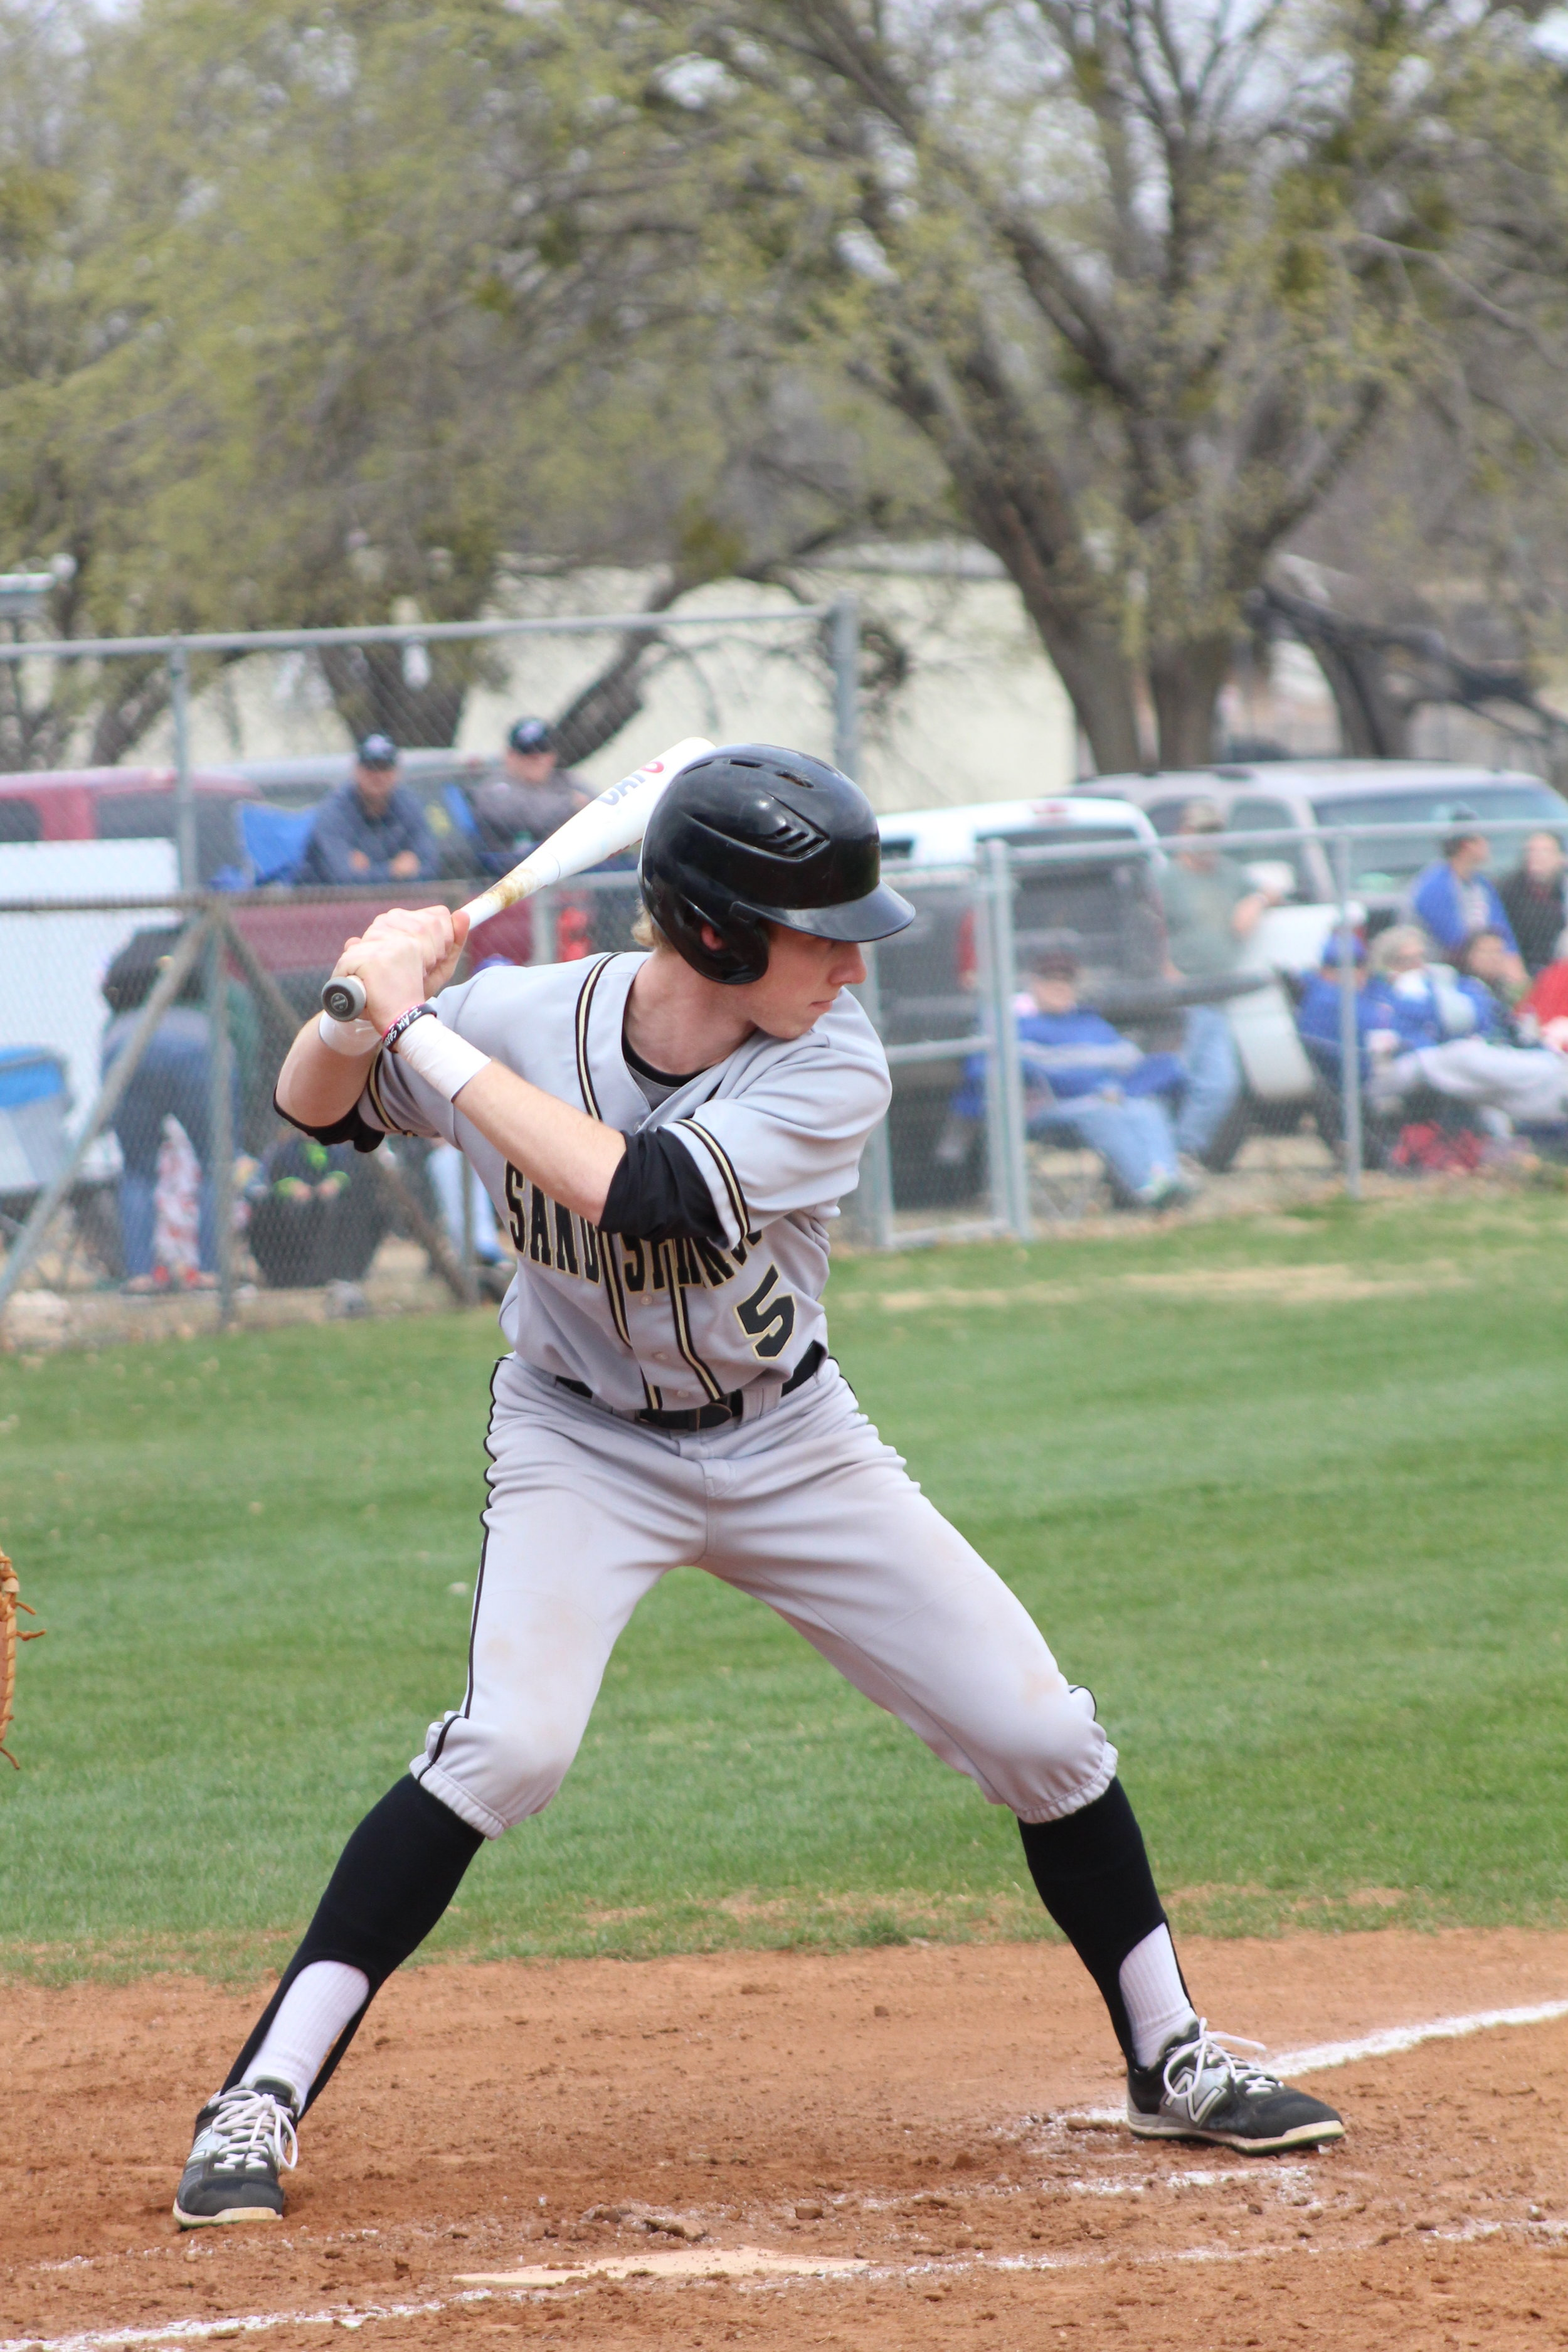 CPHS senior Hunter Greahouse hit a 3RBI double in a 9-8 loss to Broken Arrow Friday. (Photo: Scott Emigh).